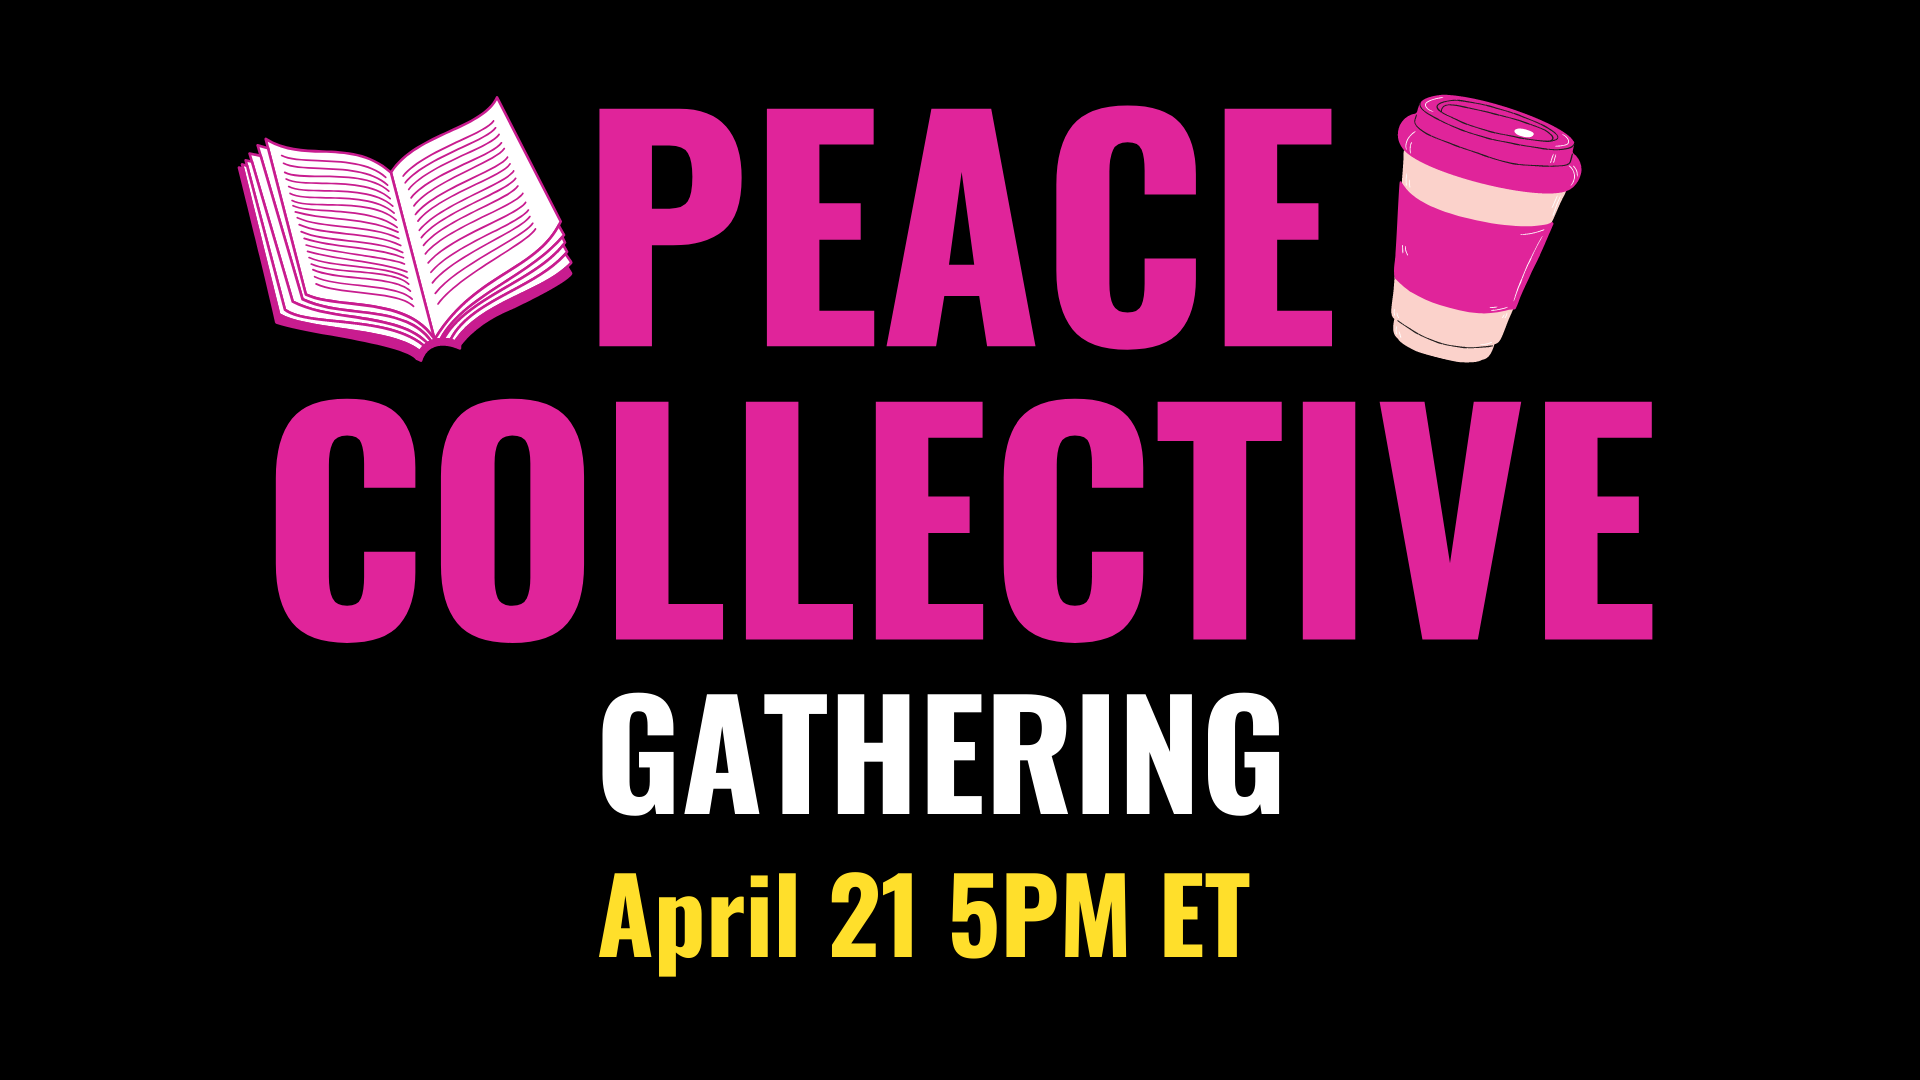 Peace Collective Gathering